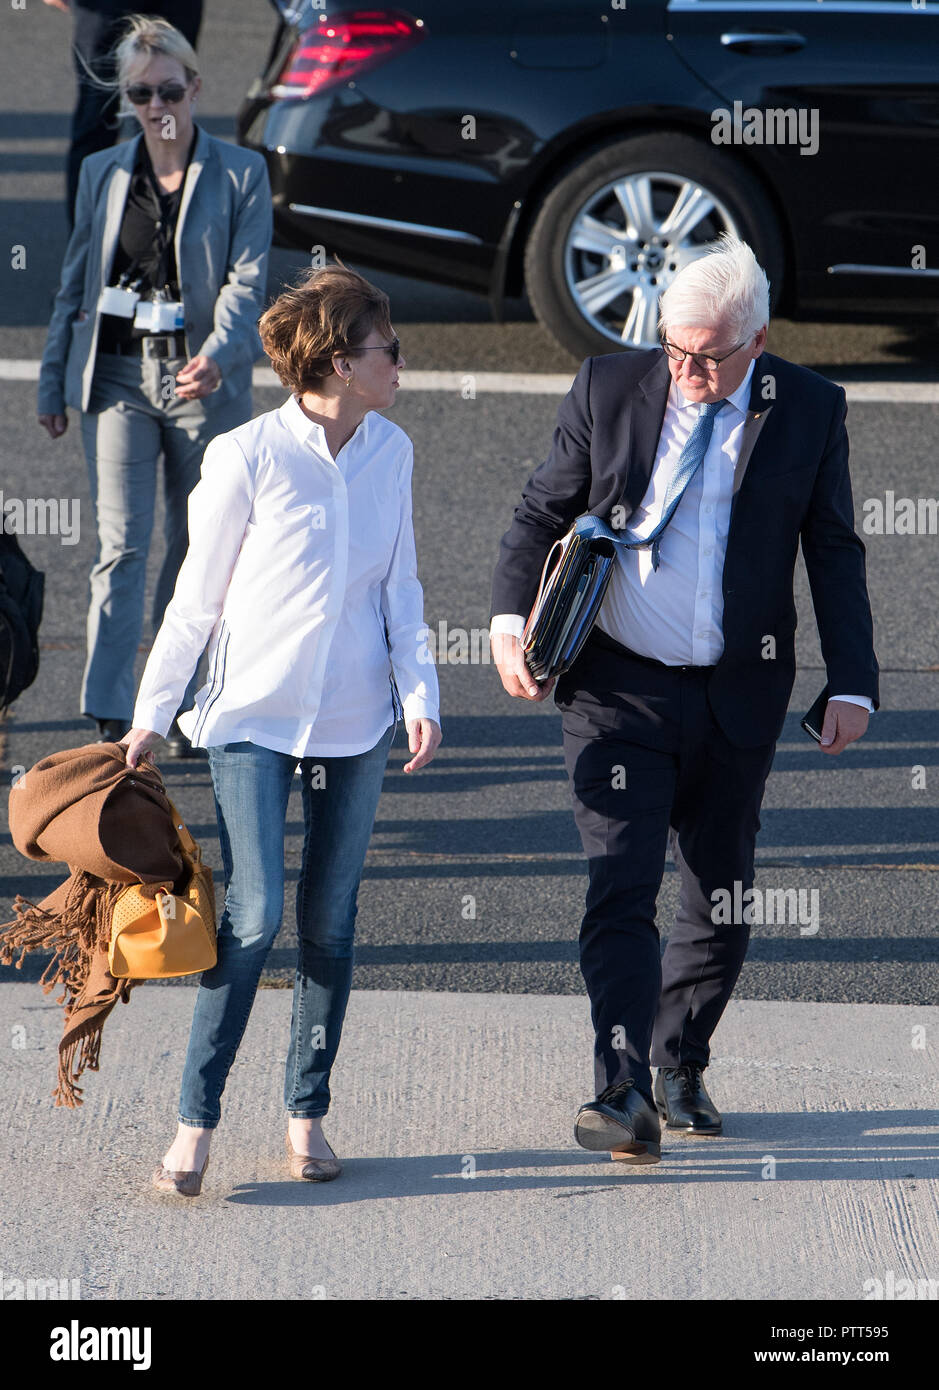 10 October 2018, Berlin: 10 October 2018, Germany, Berlin: President Frank-Walter Steinmeier and his wife Elke Buedenbender board a plane at the military section of Tegel Airport to fly to Athens (Greece). President Steinmeier and his wife start a three-day state visit to Greece. Photo: Bernd von Jutrczenka/dpa Stock Photo